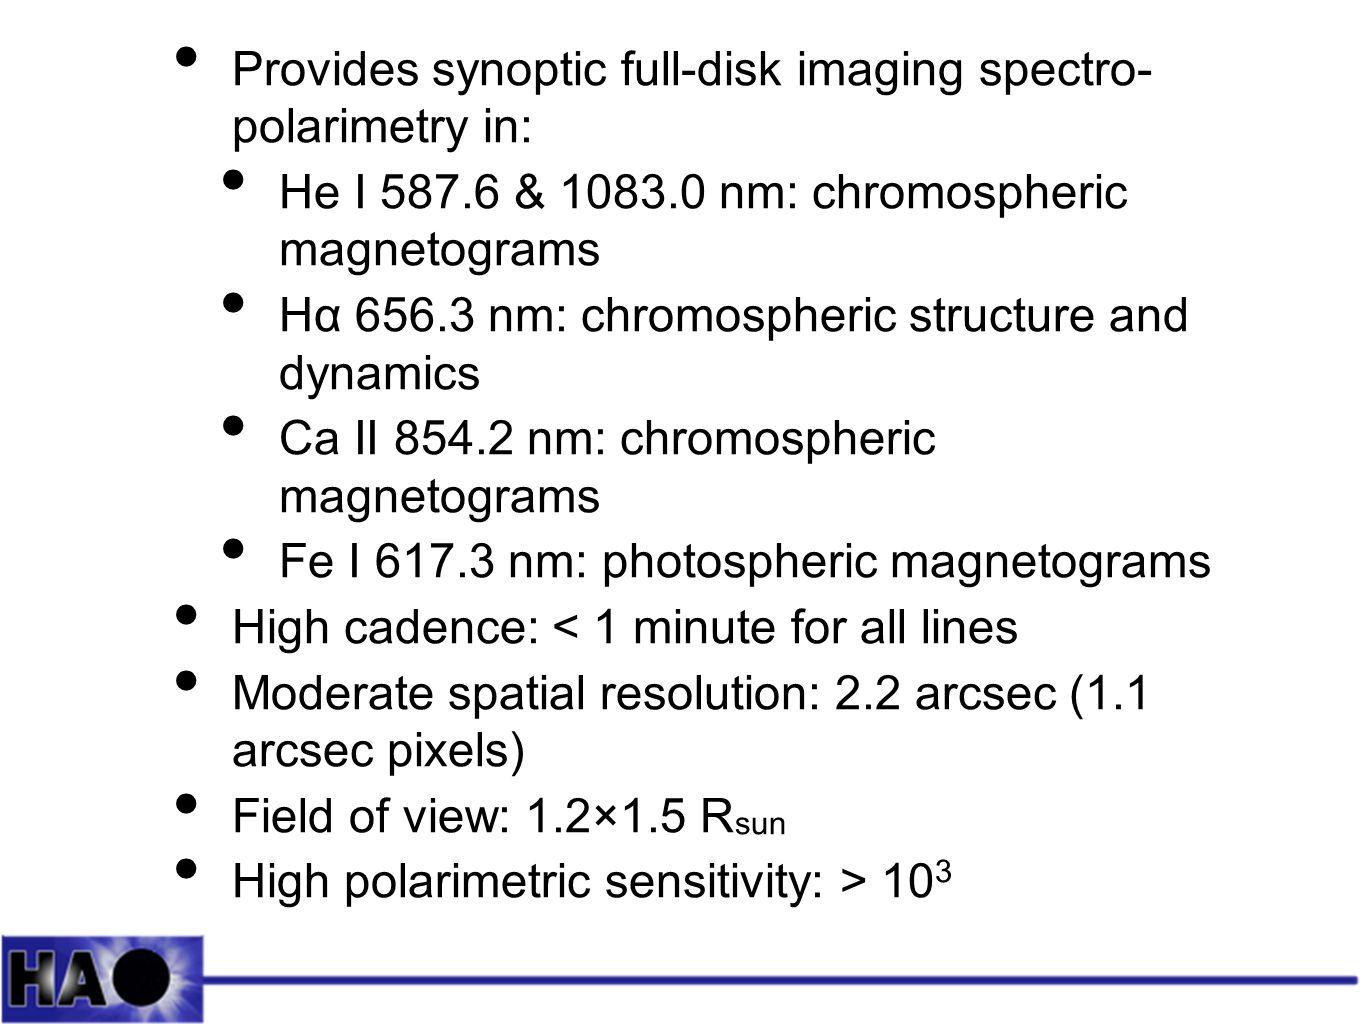 Provides synoptic full-disk imaging spectro- polarimetry in: He I 587.6 & 1083.0 nm: chromospheric magnetograms Hα 656.3 nm: chromospheric structure and dynamics Ca II 854.2 nm: chromospheric magnetograms Fe I 617.3 nm: photospheric magnetograms High cadence: < 1 minute for all lines Moderate spatial resolution: 2.2 arcsec (1.1 arcsec pixels) Field of view: 1.2×1.5 R sun High polarimetric sensitivity: > 10 3